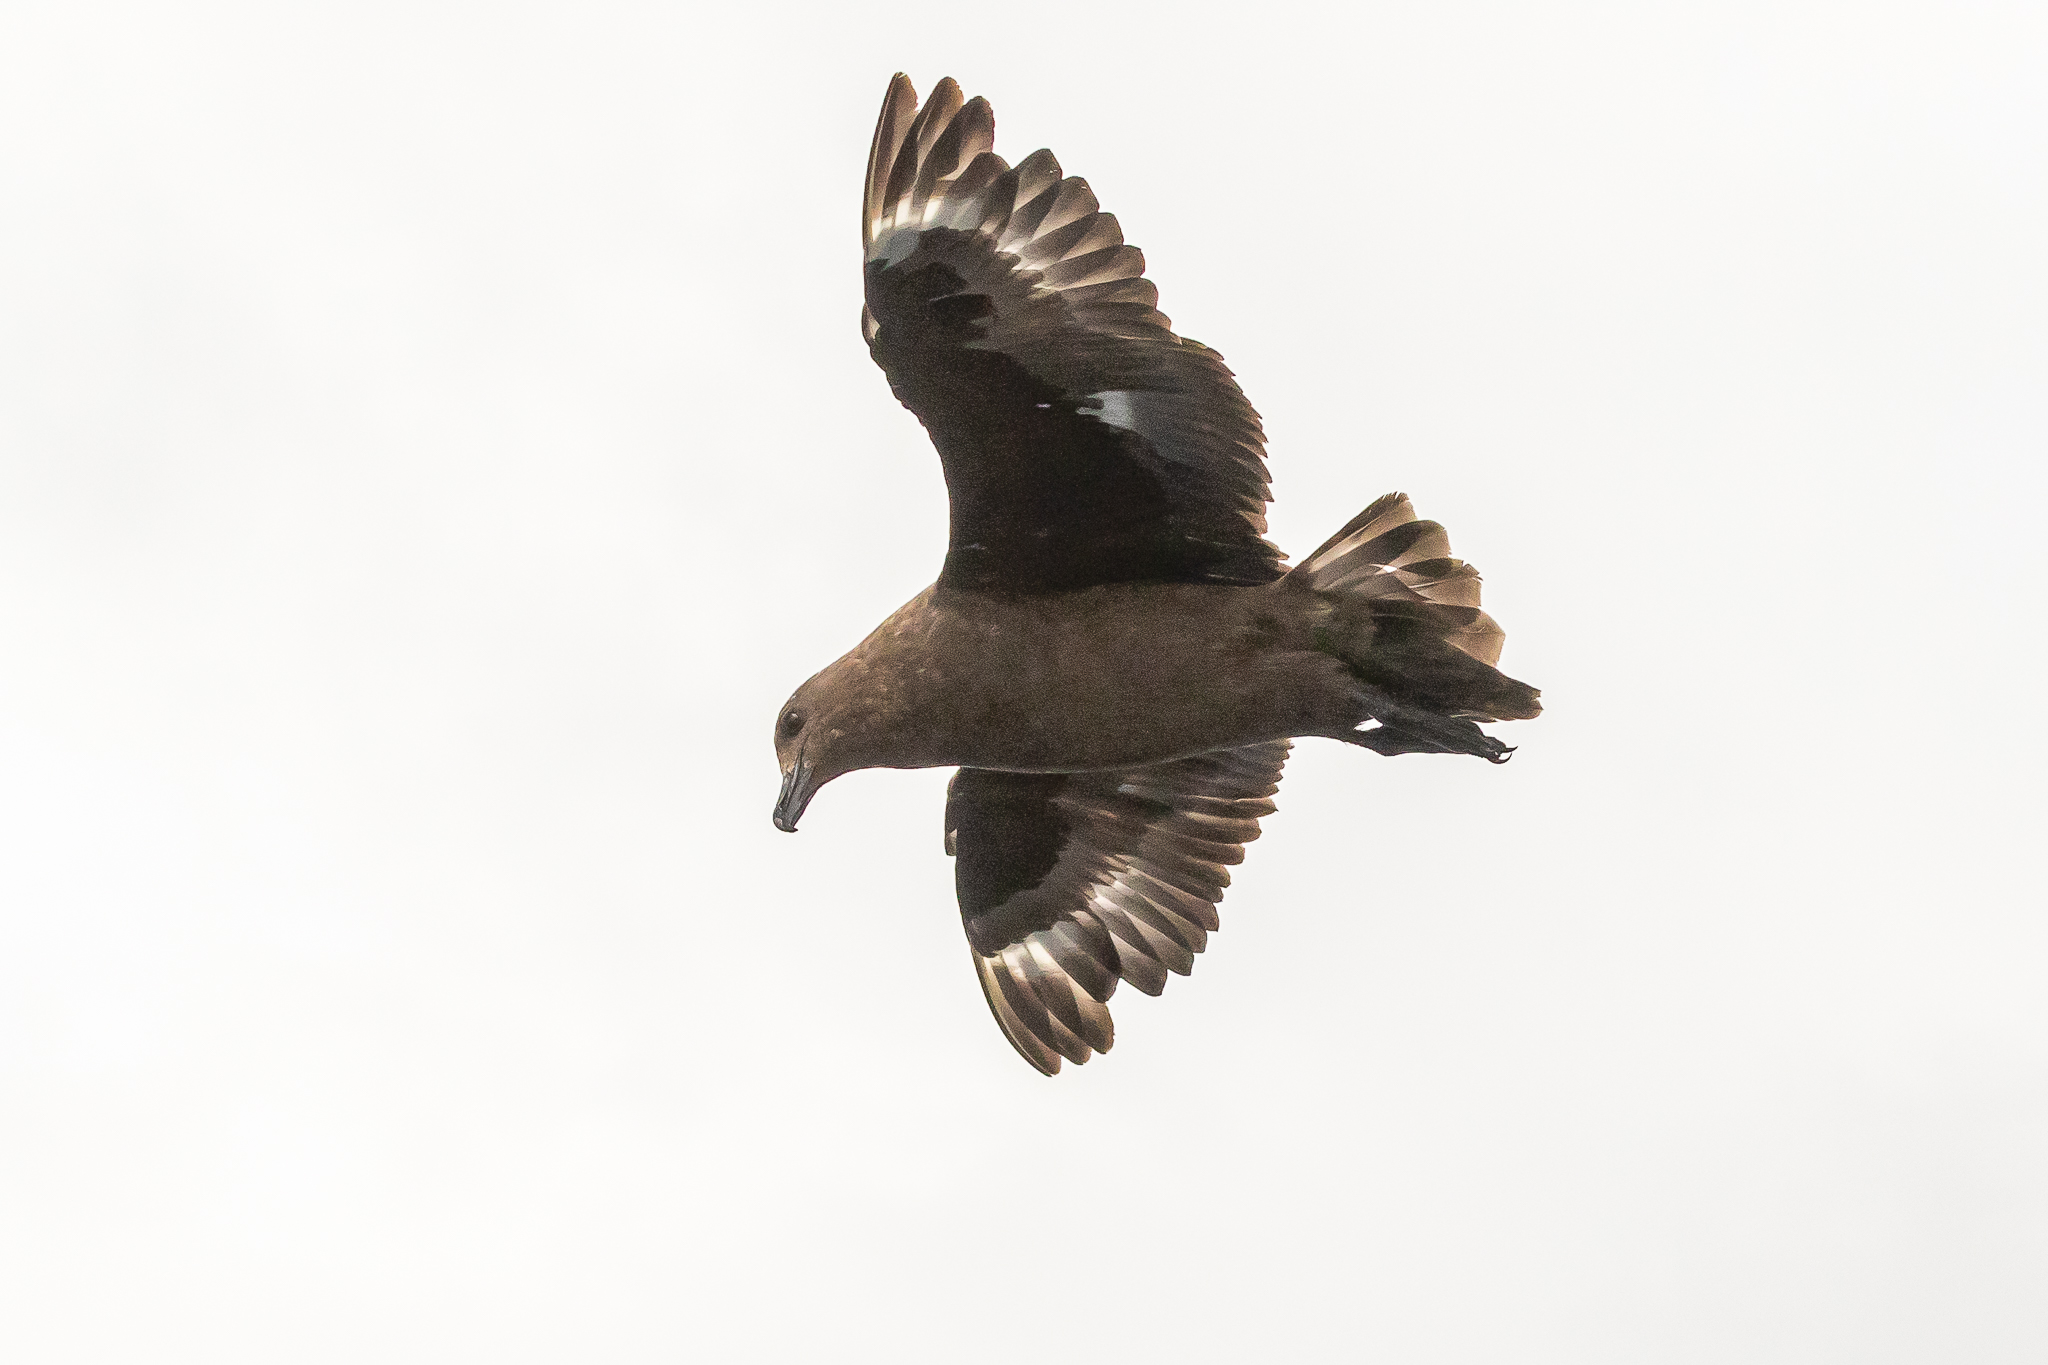 The Great Skua obtain fish by robbing other gulls and terns. They also feed on smaller seabirds, attacking them on the wing, using brute strength to pull them into the water.